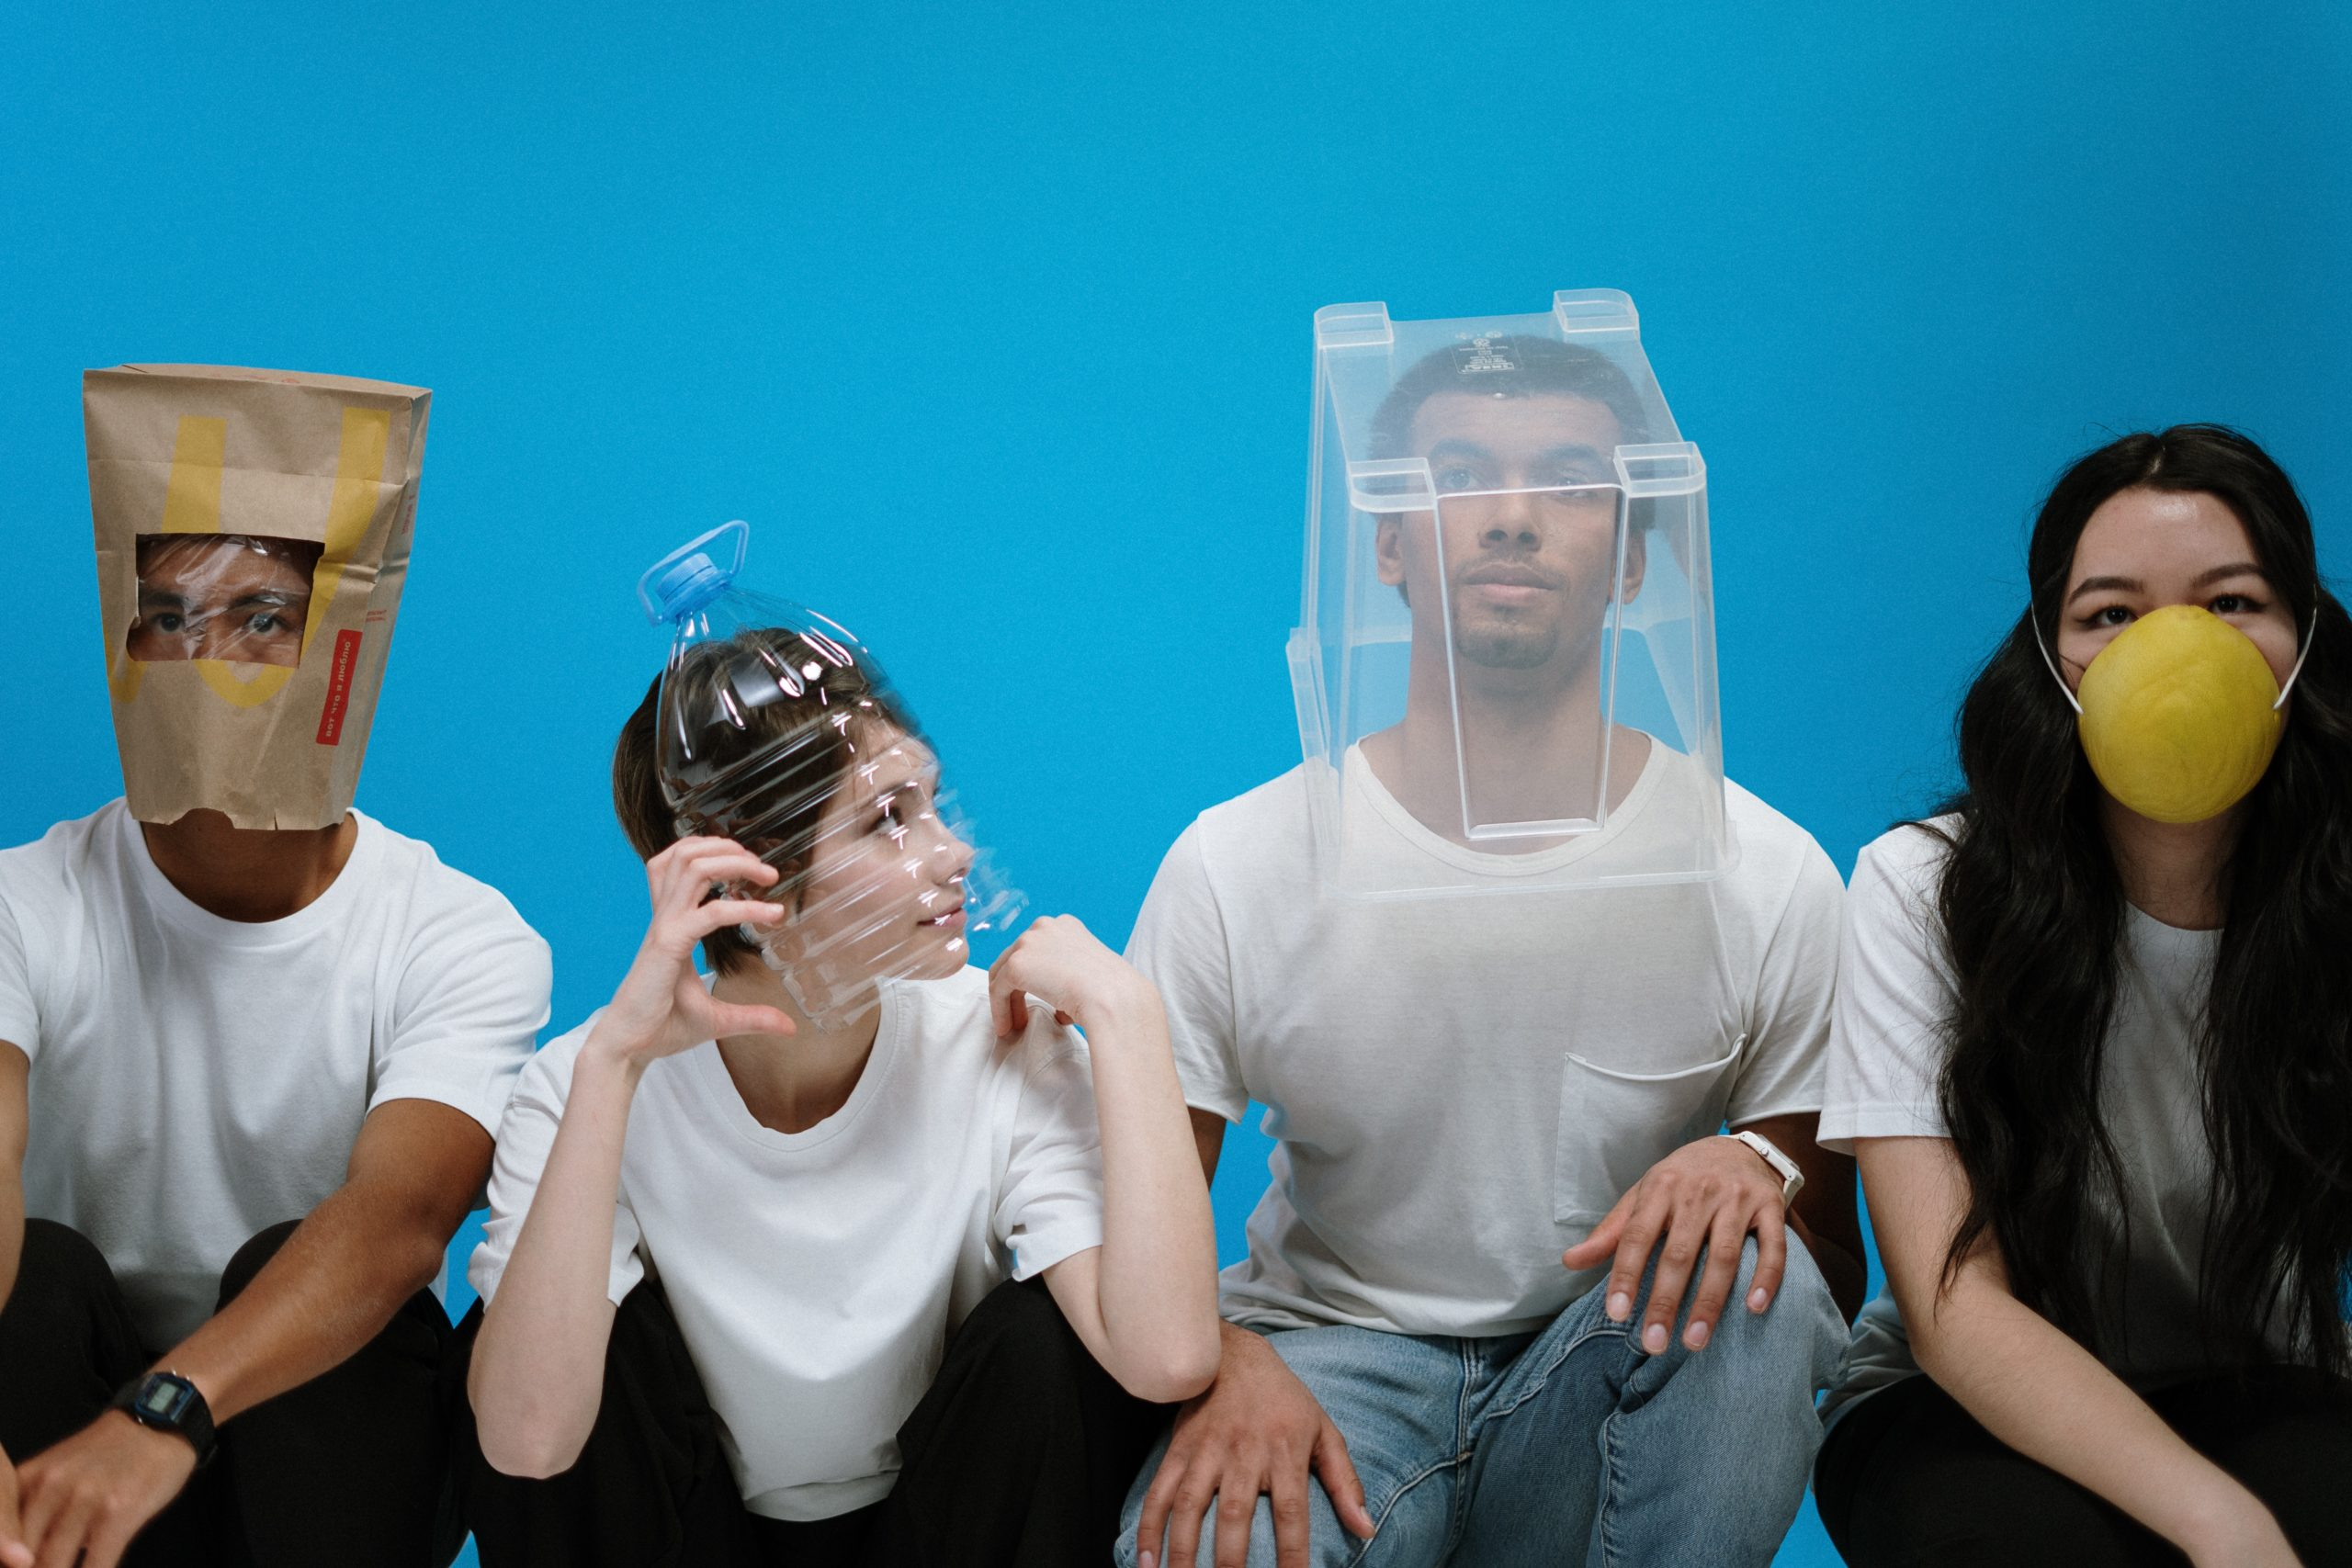 Four people wearing face masks made from unusual items.